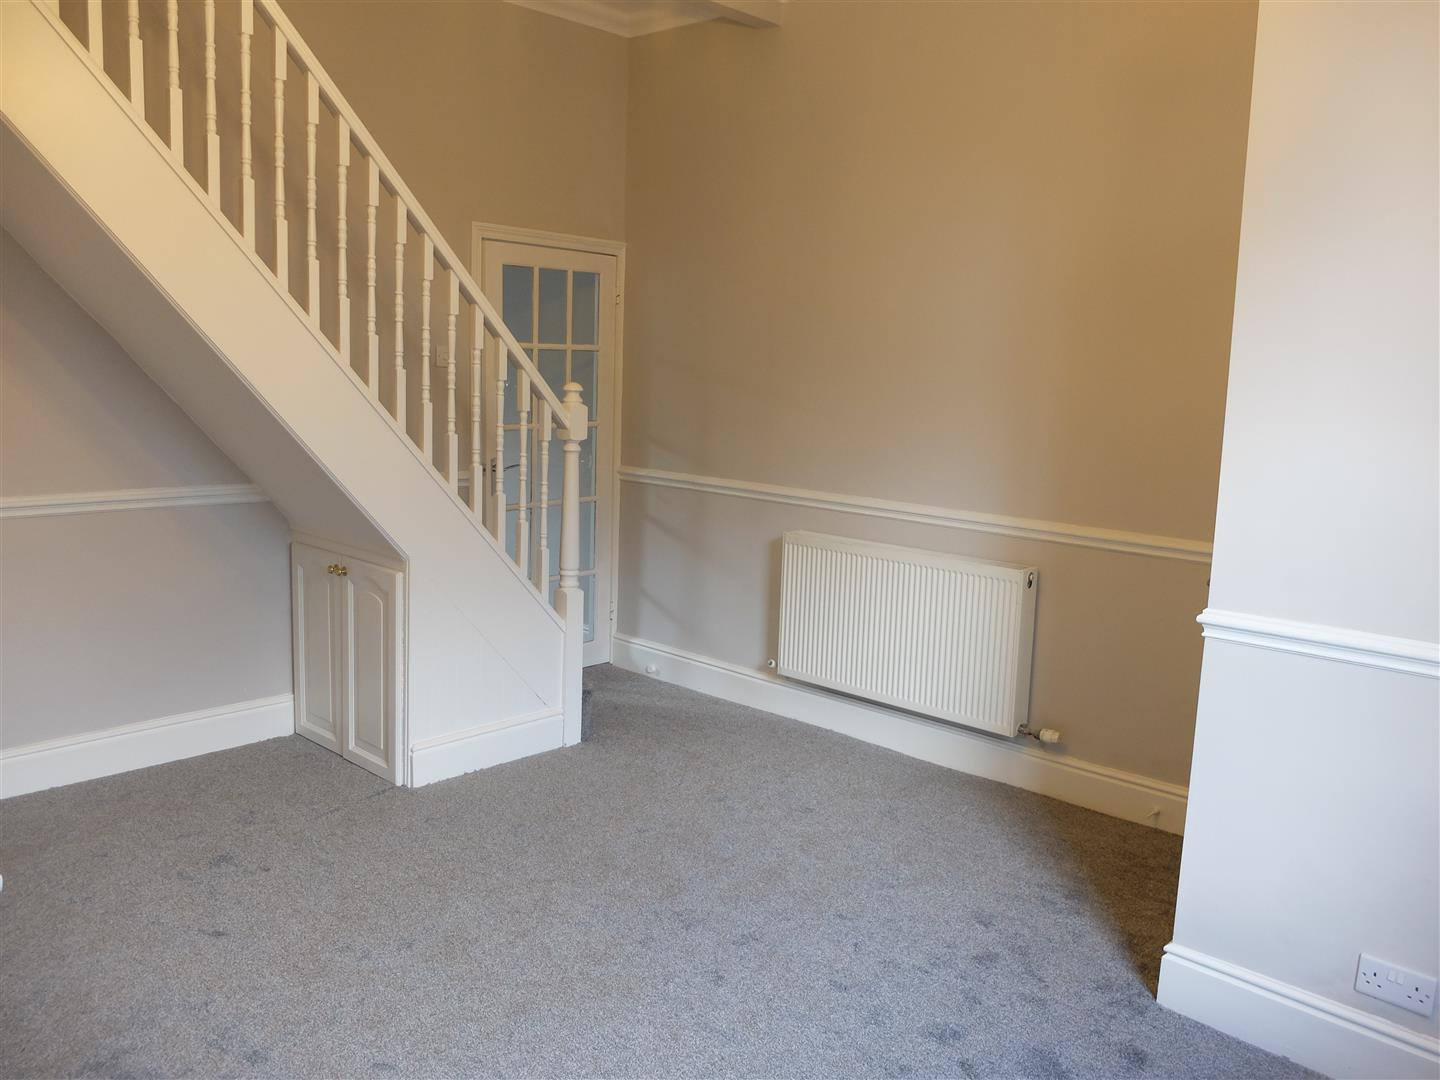 3 Bedrooms House - Terraced On Sale 43 Raven Street Carlisle